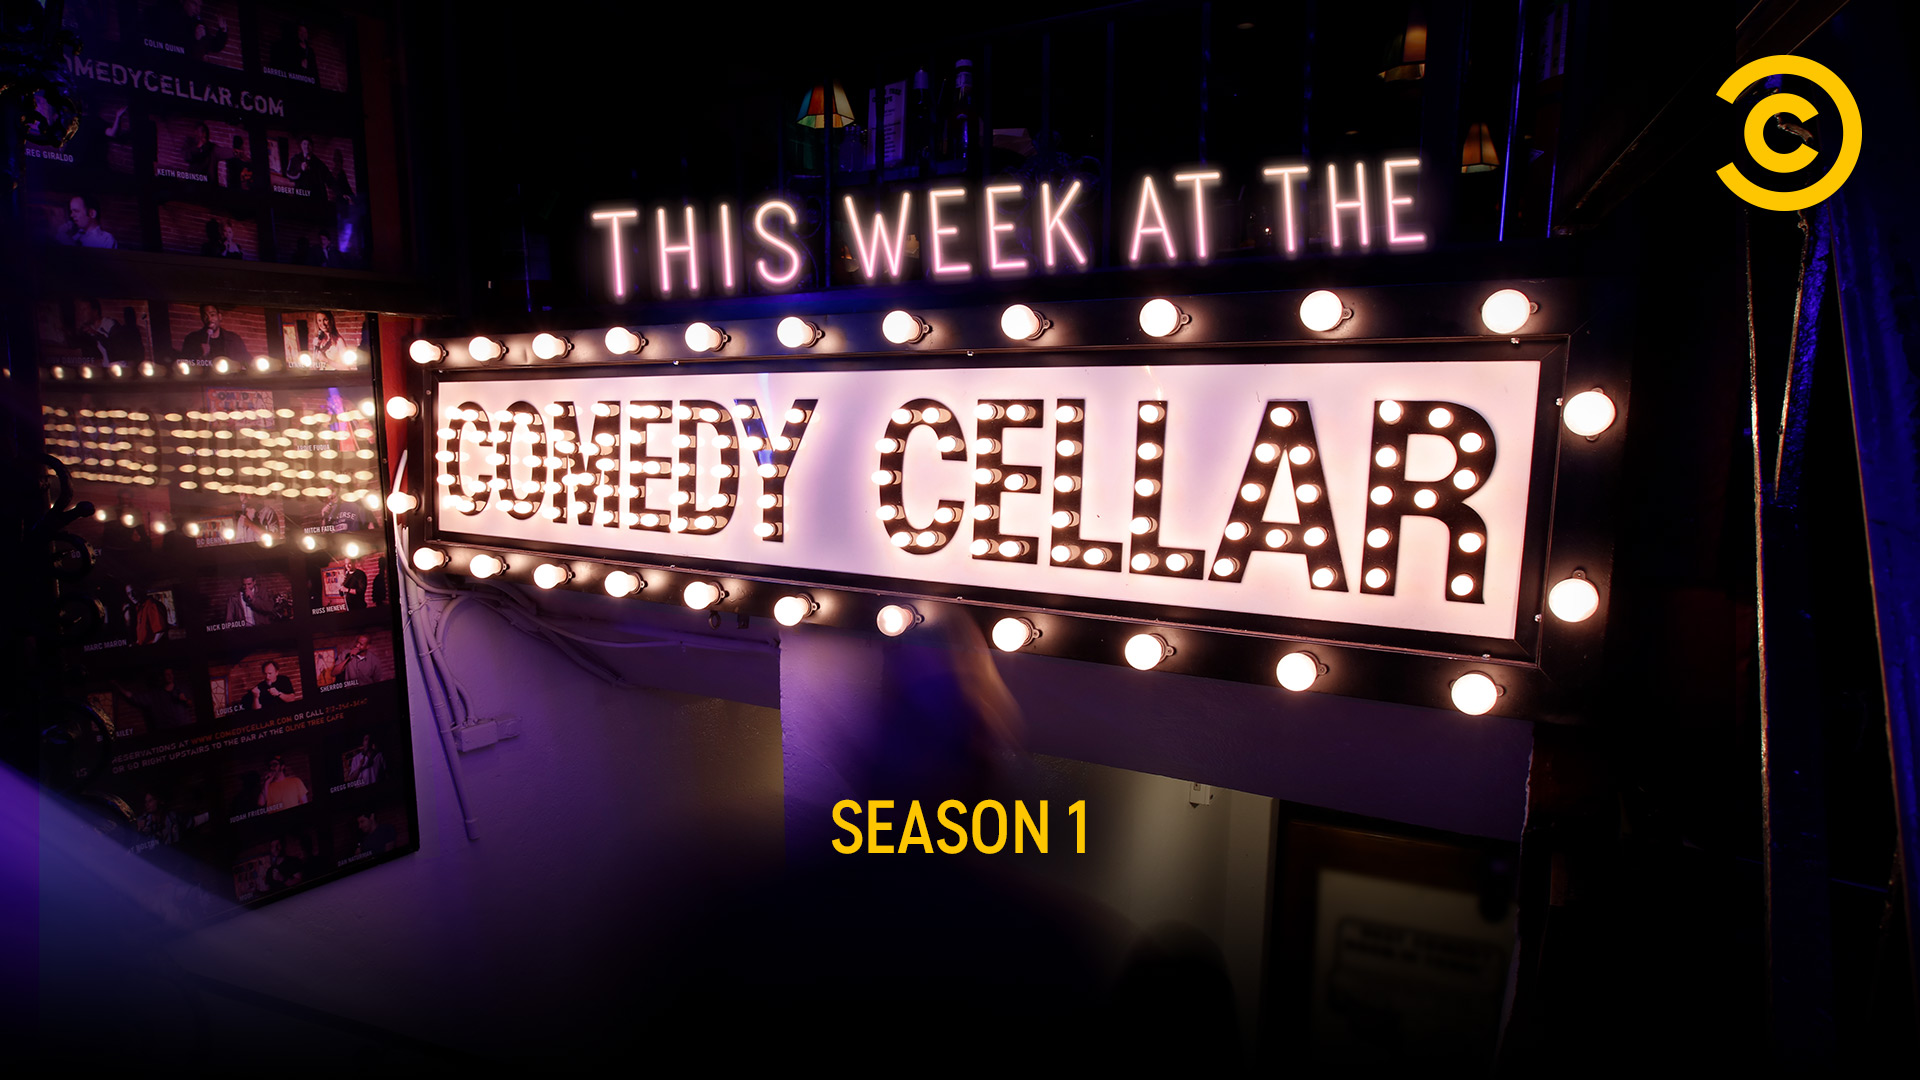 This Week at the Comedy Cellar Season 1